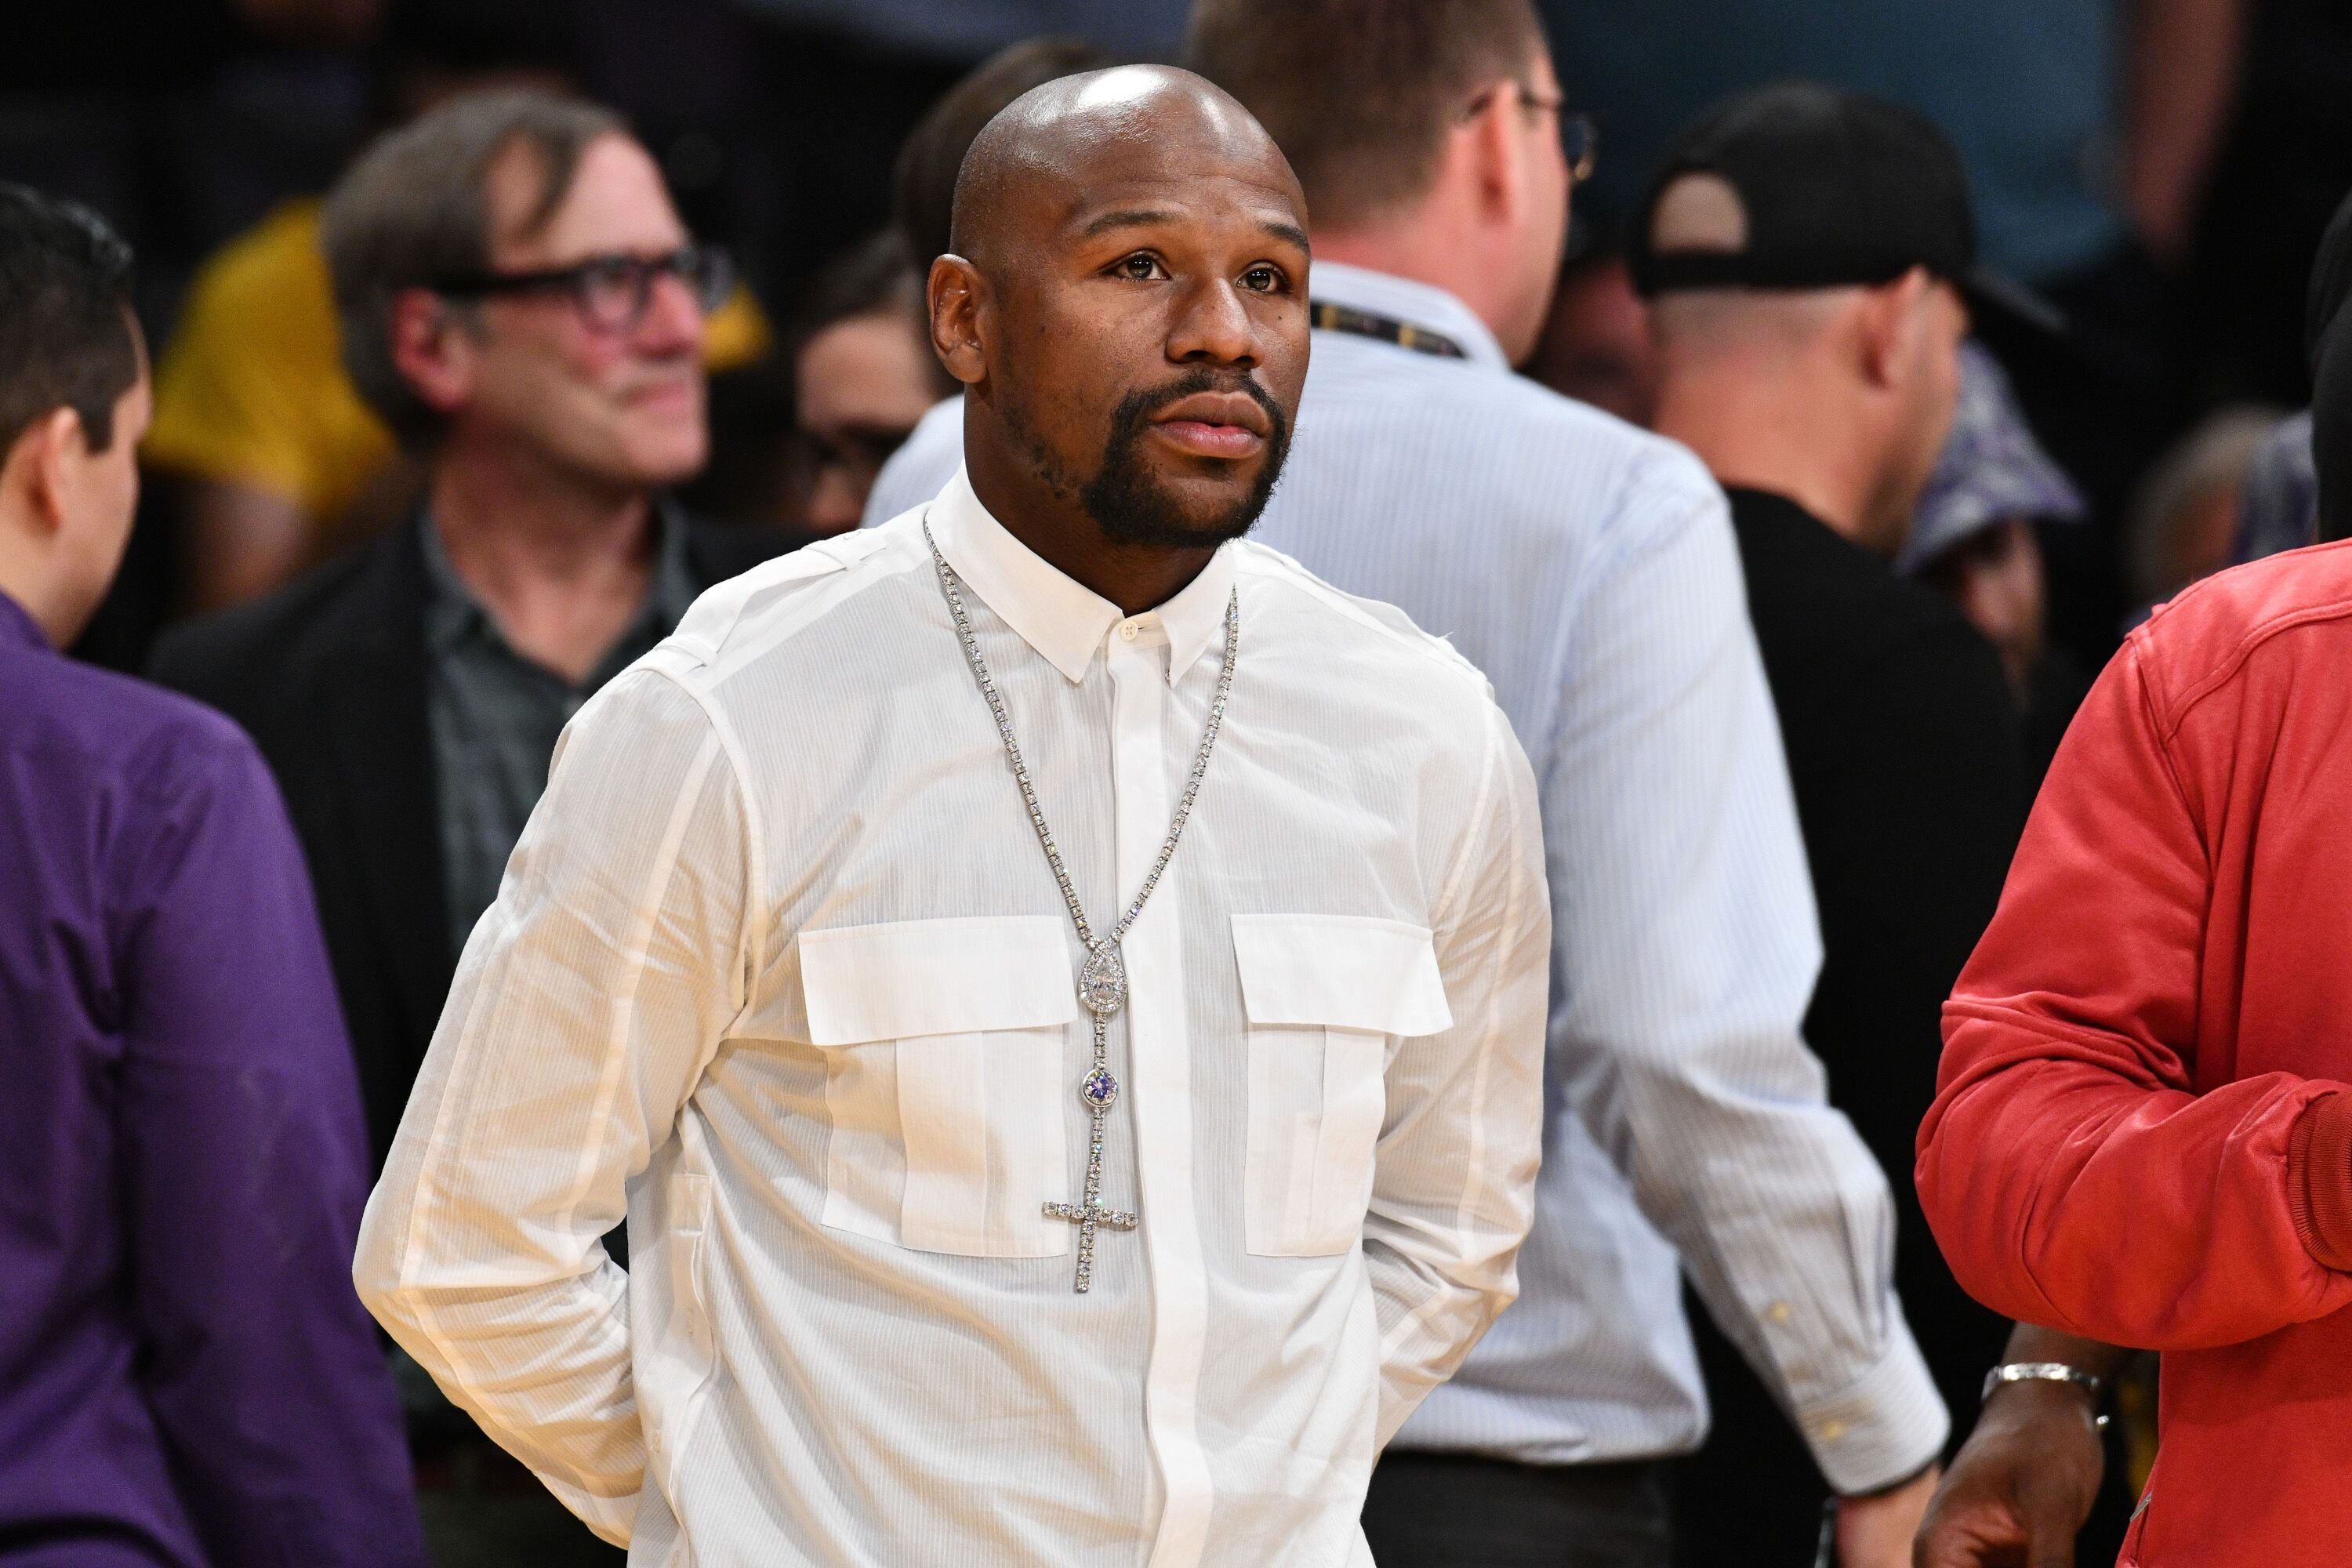 Floyd Mayweather Jr. attends a basketball game between the Los Angeles Lakers and the Atlanta Hawks at Staples Center on November 11, 2018 in Los Angeles, California. | Source: Getty Images